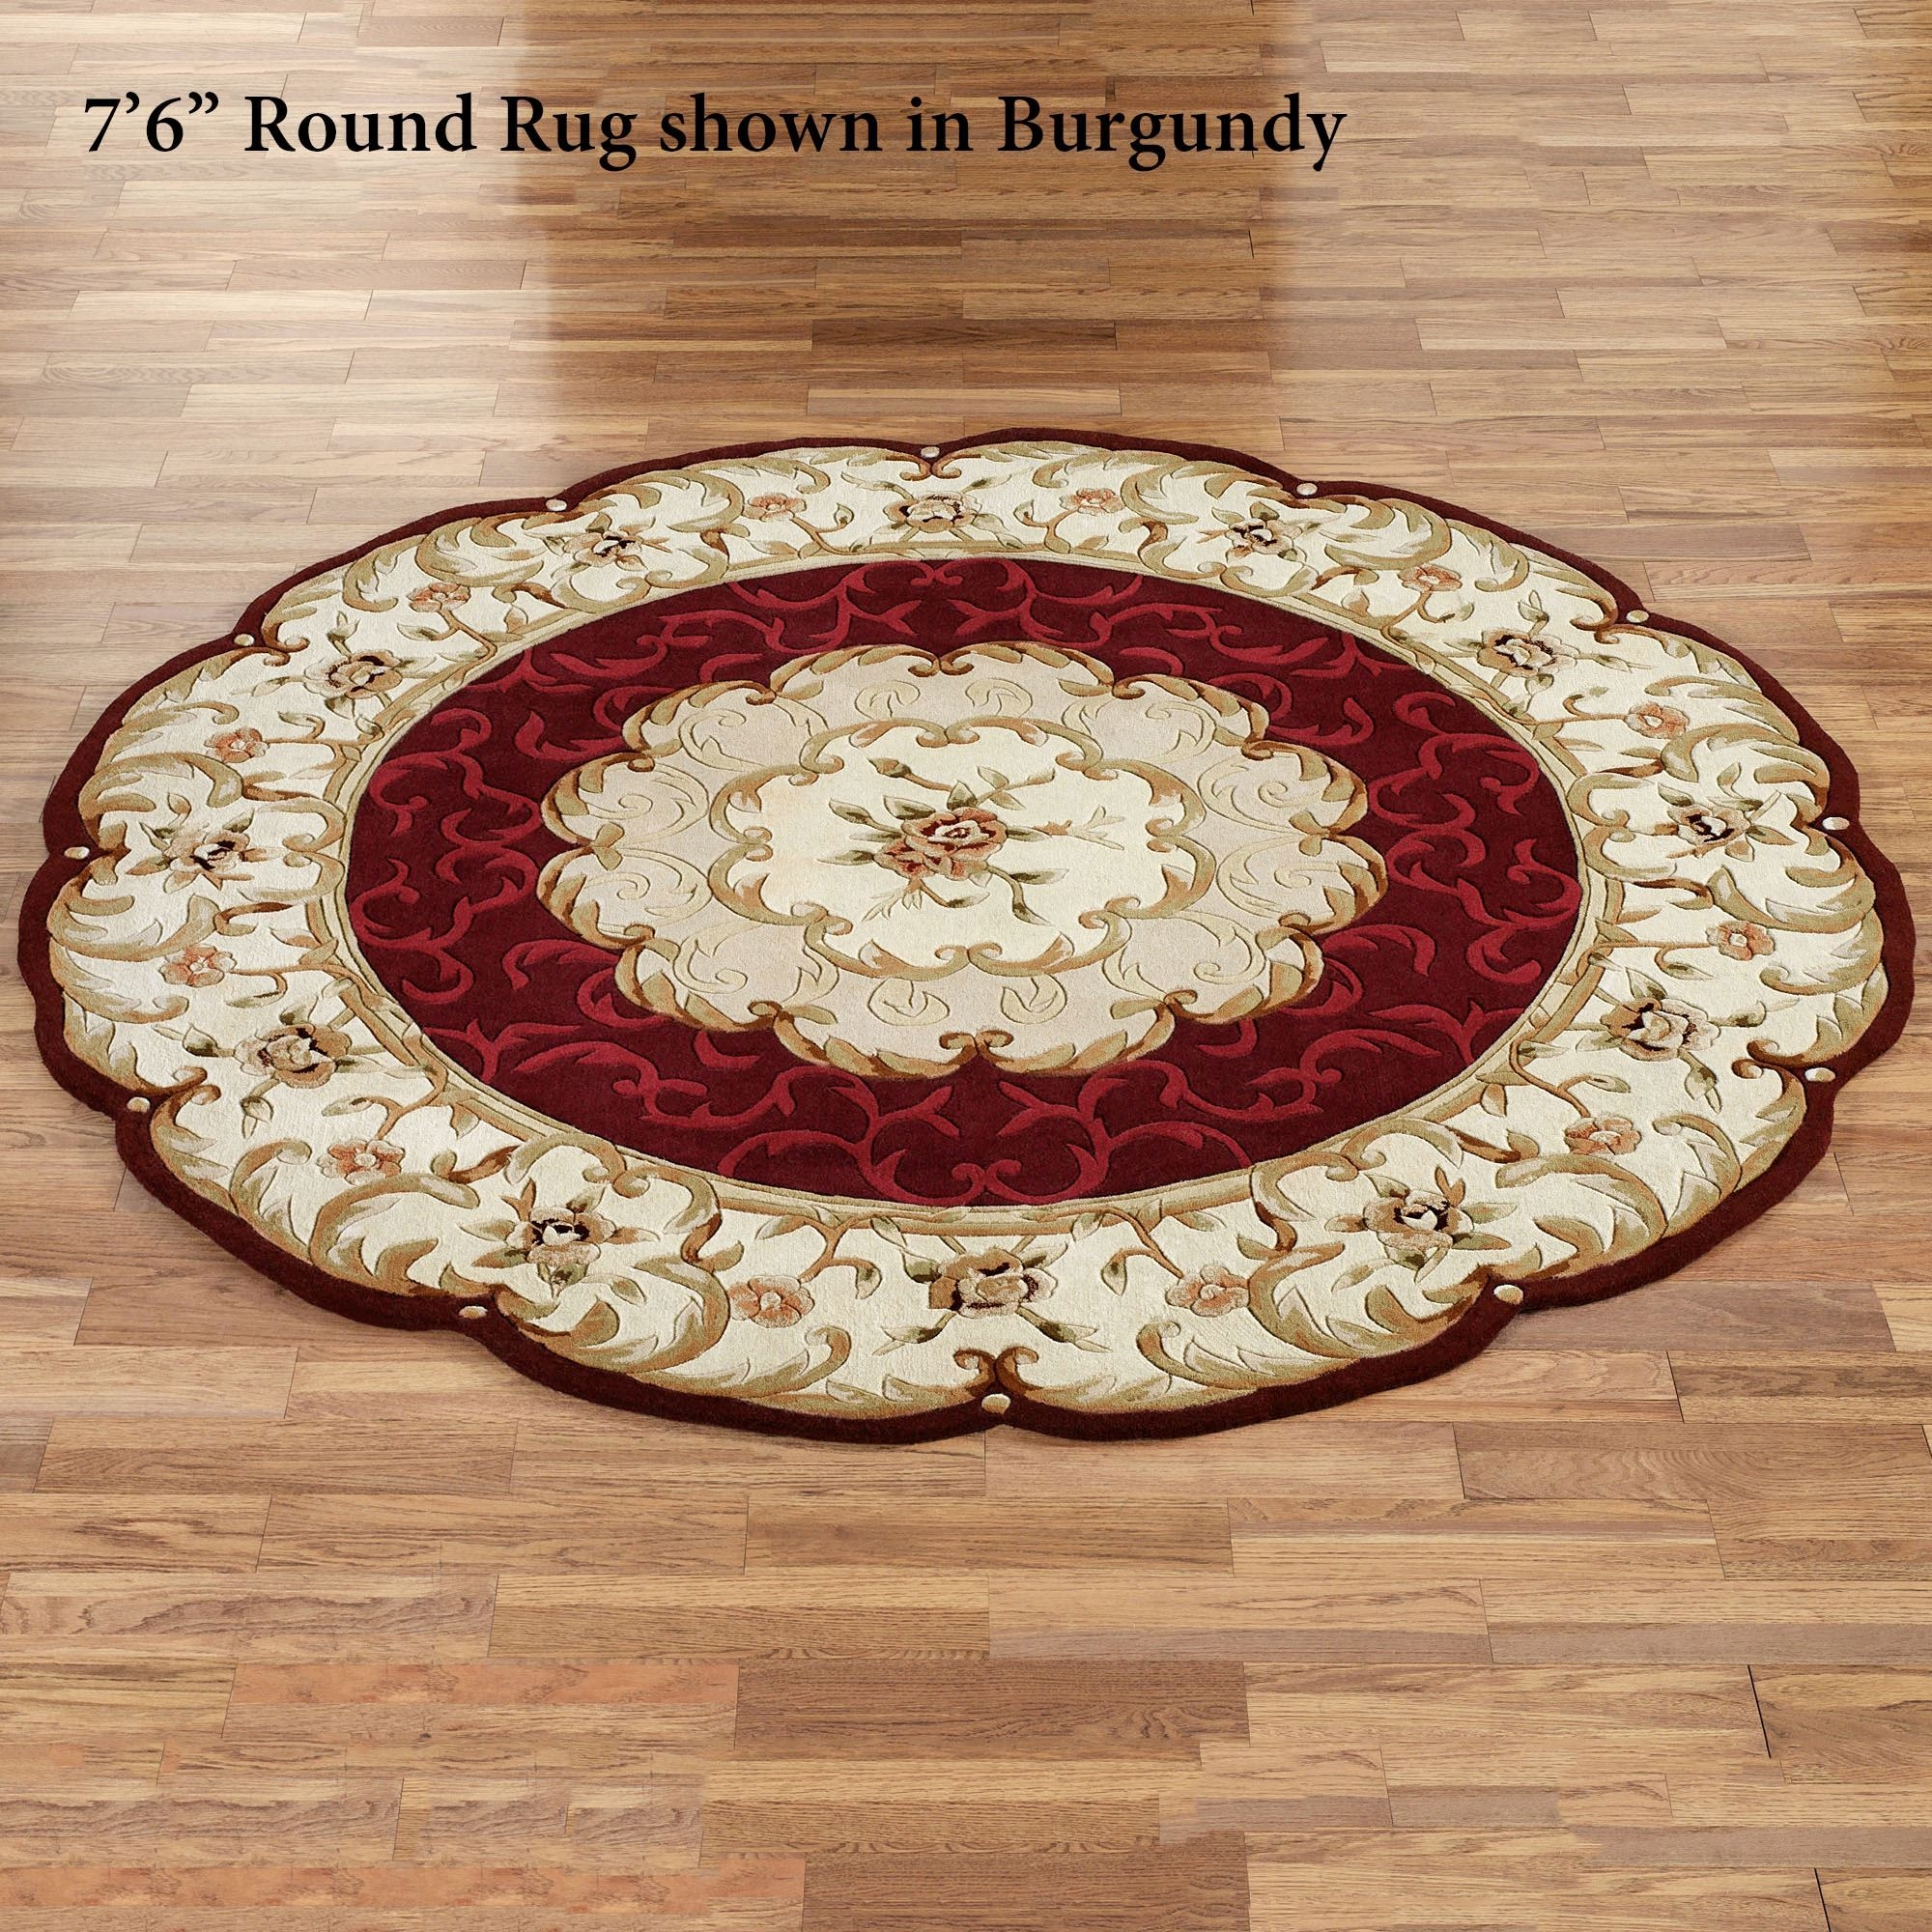 Circular Area Rugs The Rug Establishment Black Circle Rug Within Rounds Rugs (Image 1 of 15)